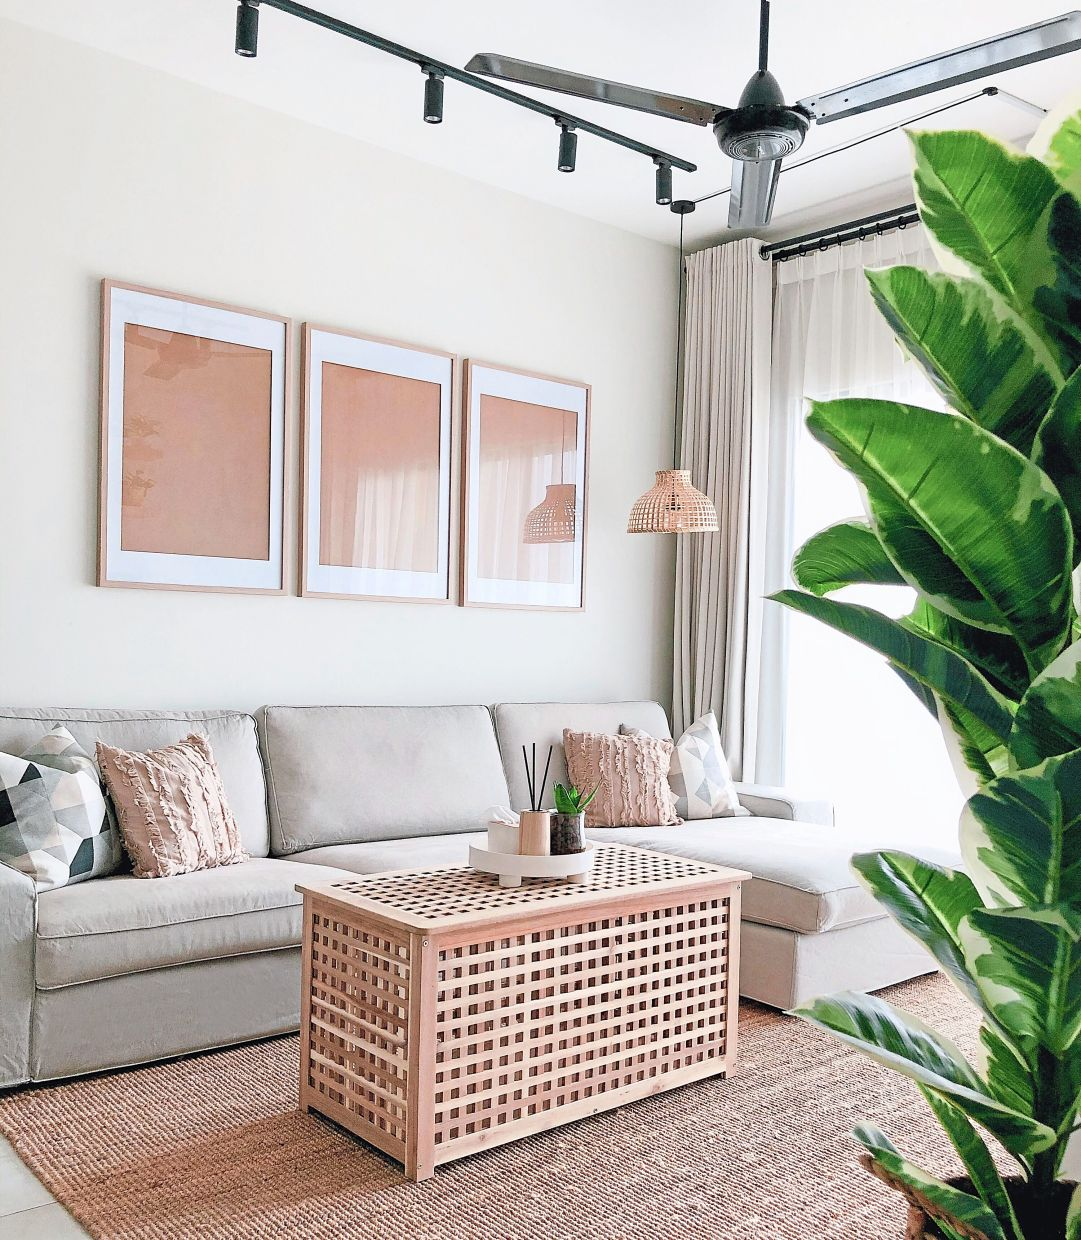 Safina and her husband chose four colours as the main colour palette for their apartment to ensure they create a design style that appears cohesive and unified.